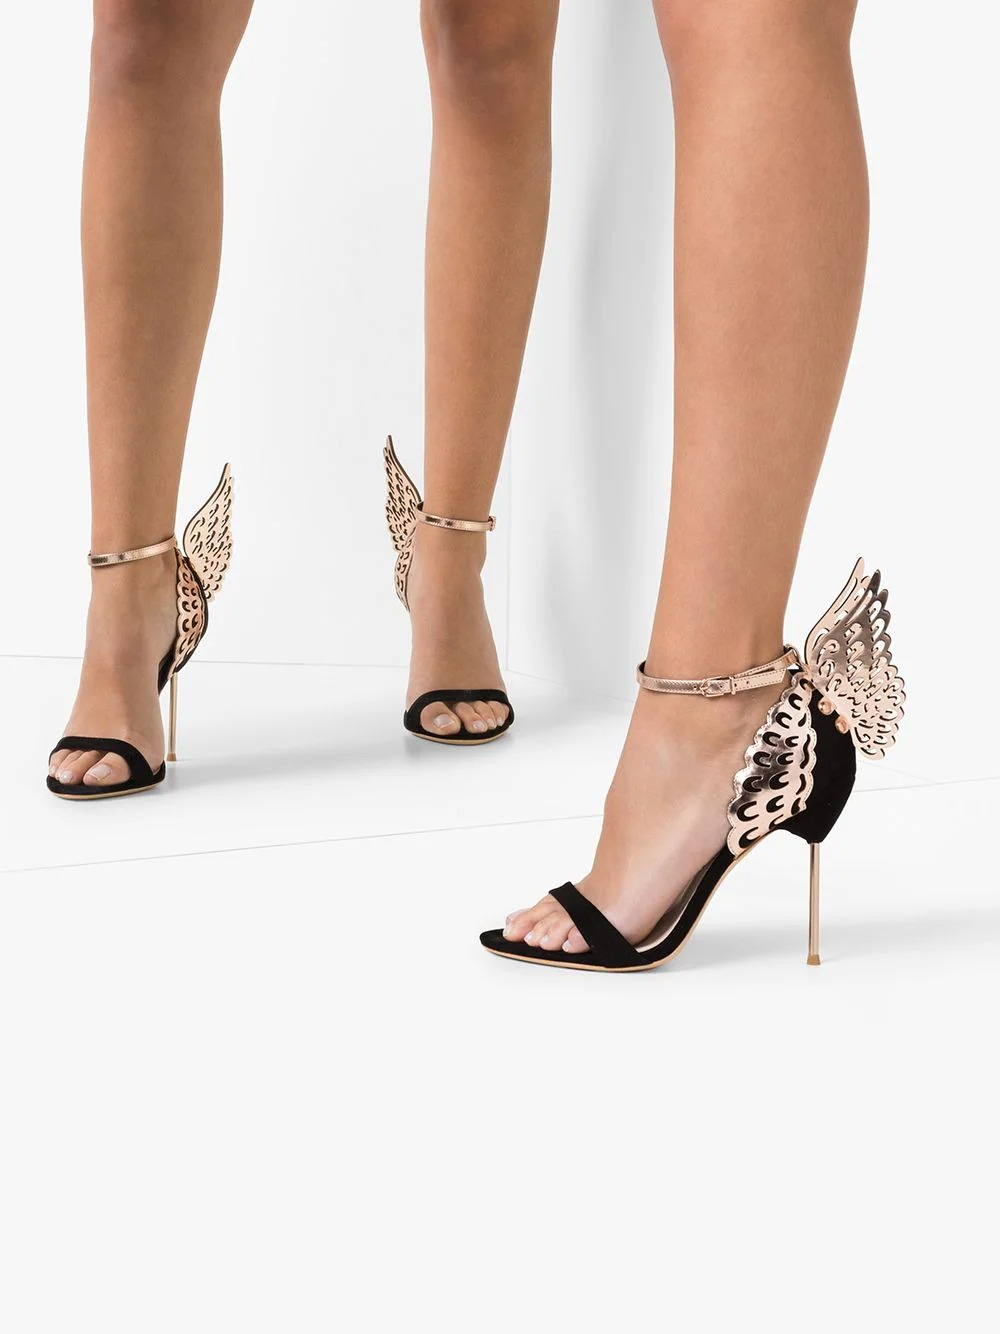 black and gold stiletto butterfly sandal Sophia Webster wedding shoes